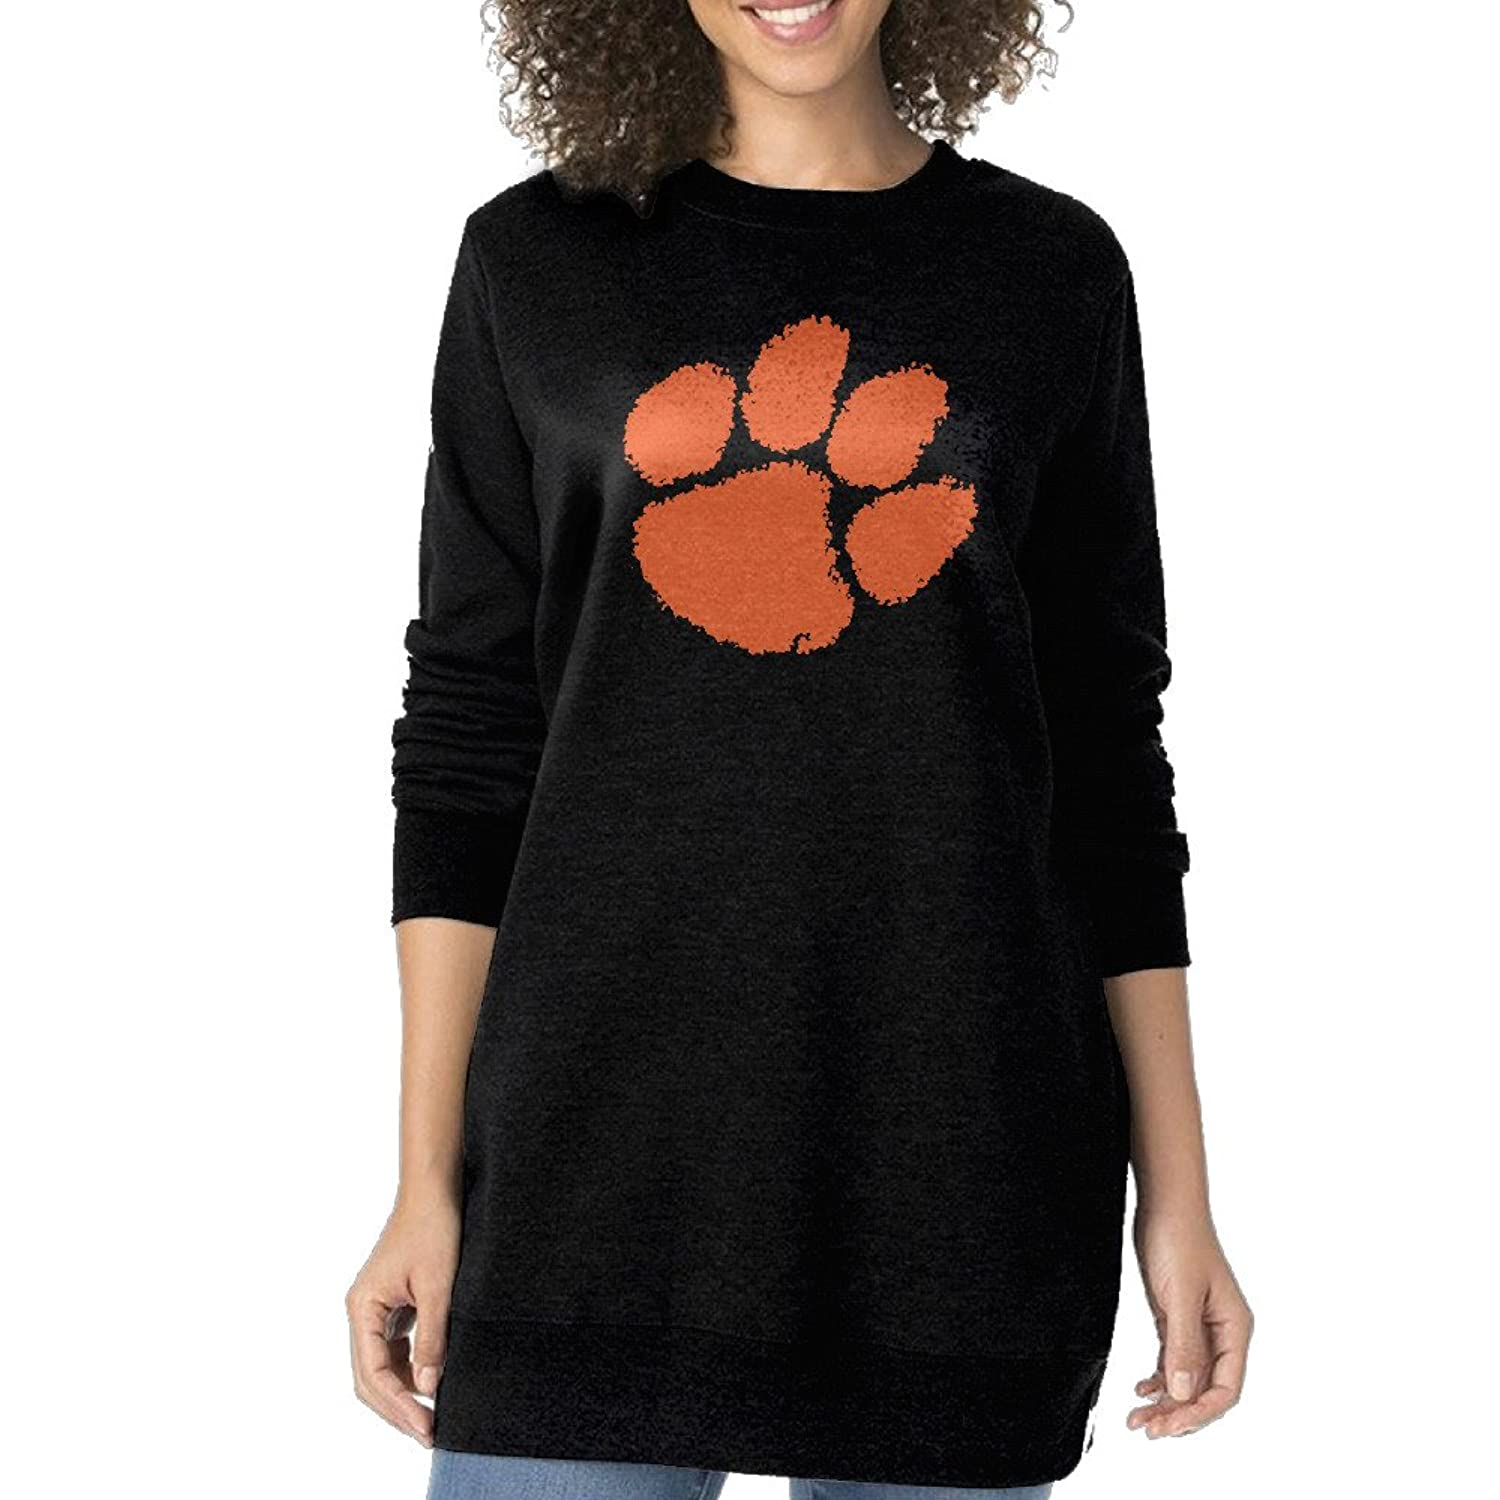 Clemson Tigers Football Dabo Swinney The Tiger Sweatshirt Dress Hoodie